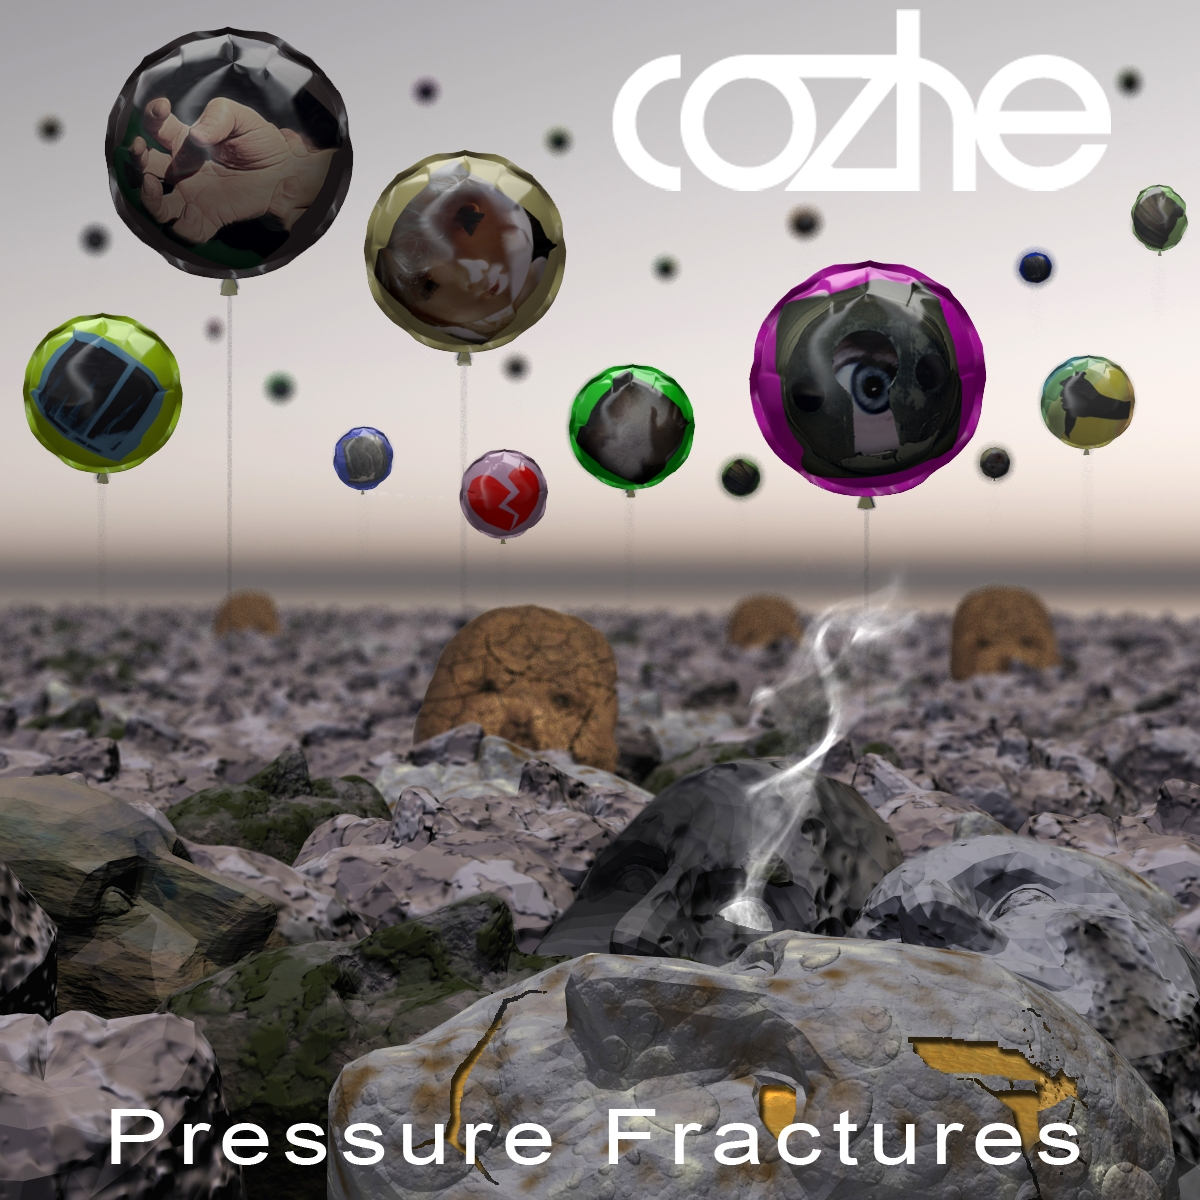 cozhe-Pressure-Fractures-front-cover